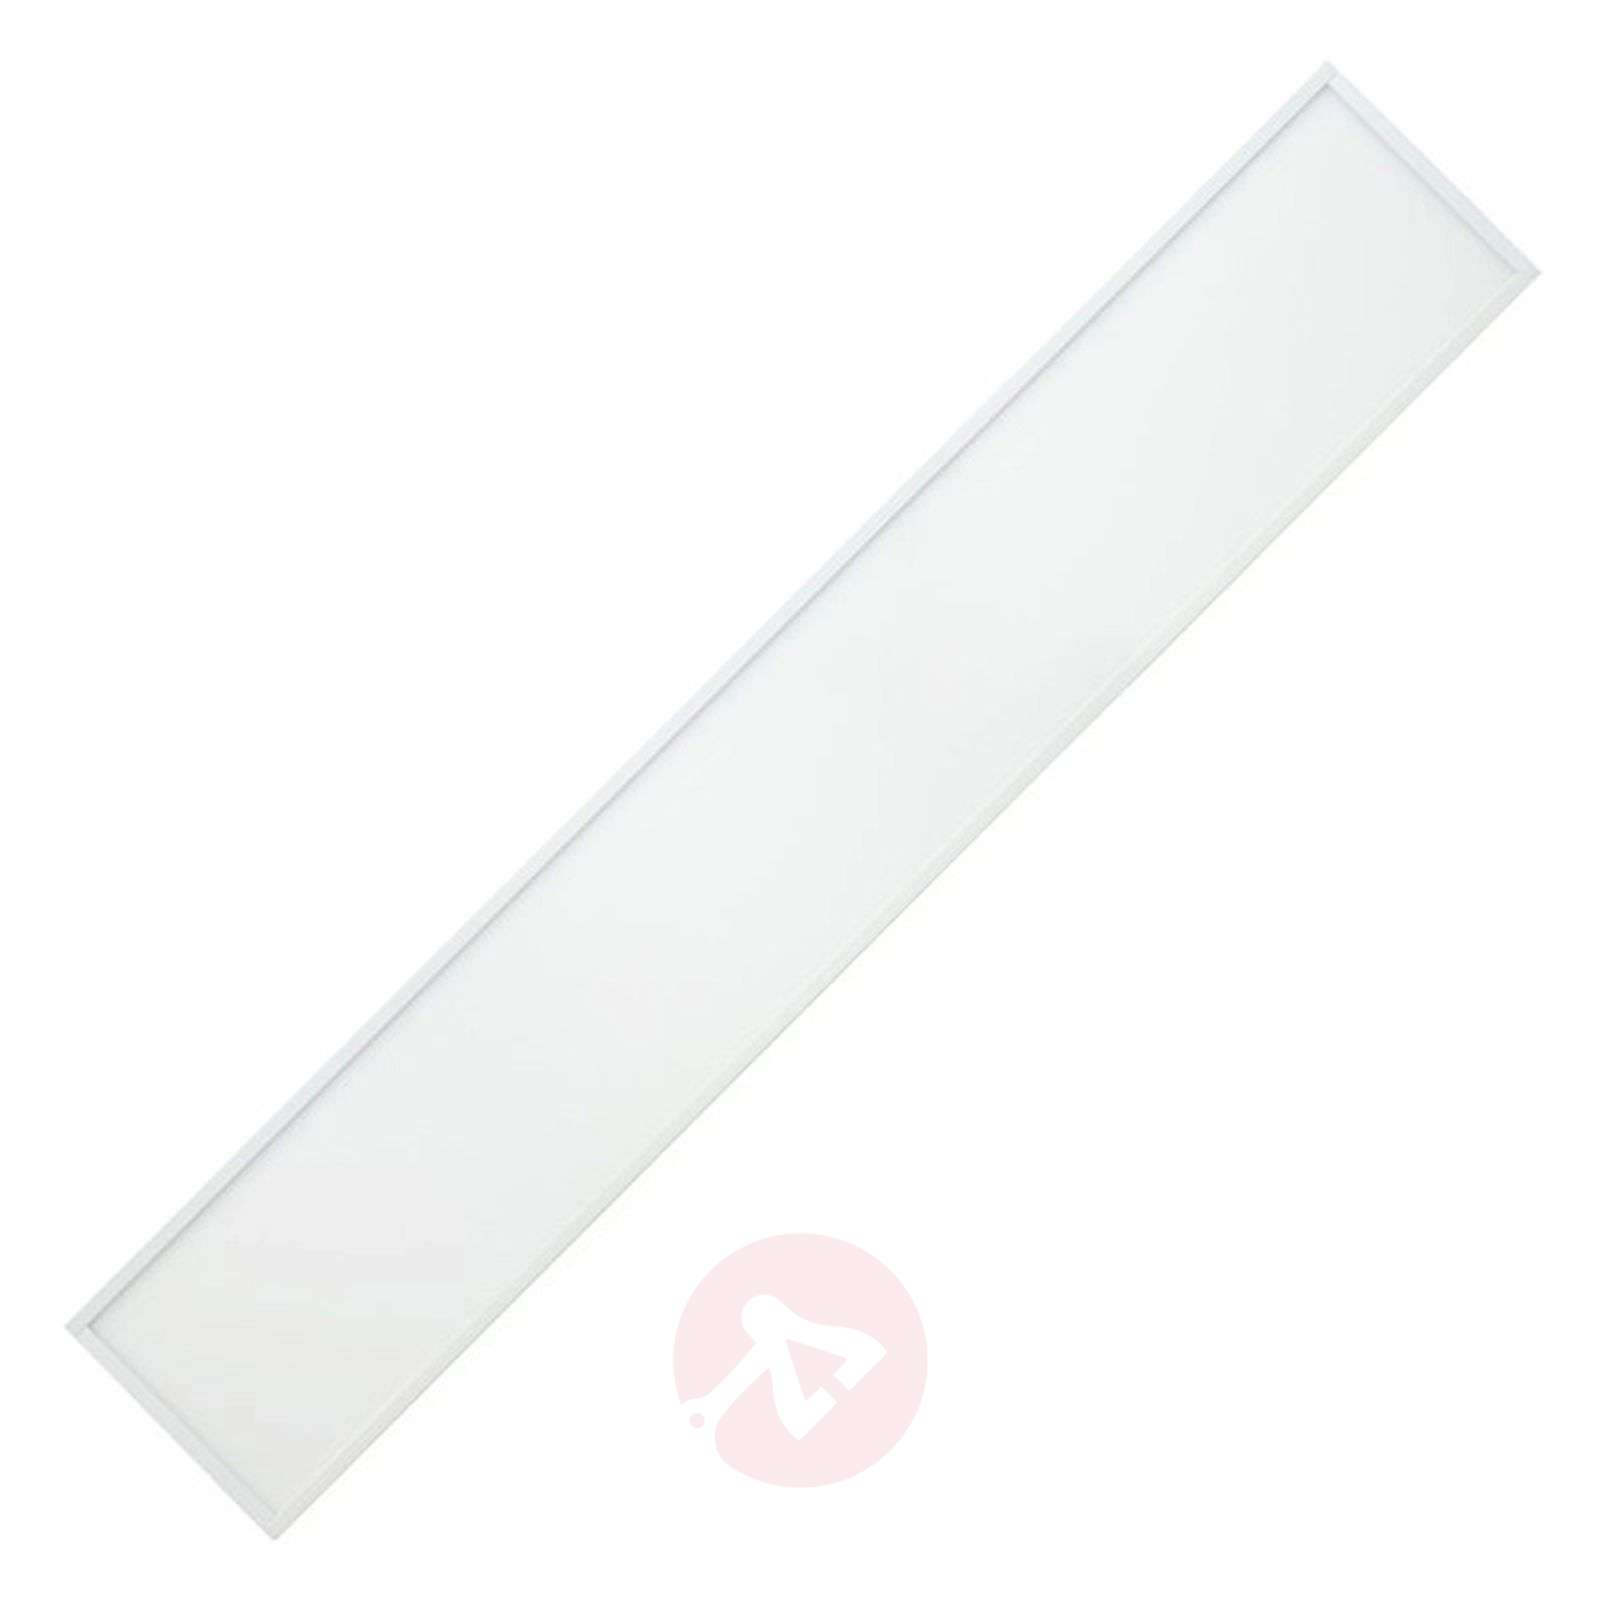 Square Switch Tone LED panel, 120 cm long-6520325-01